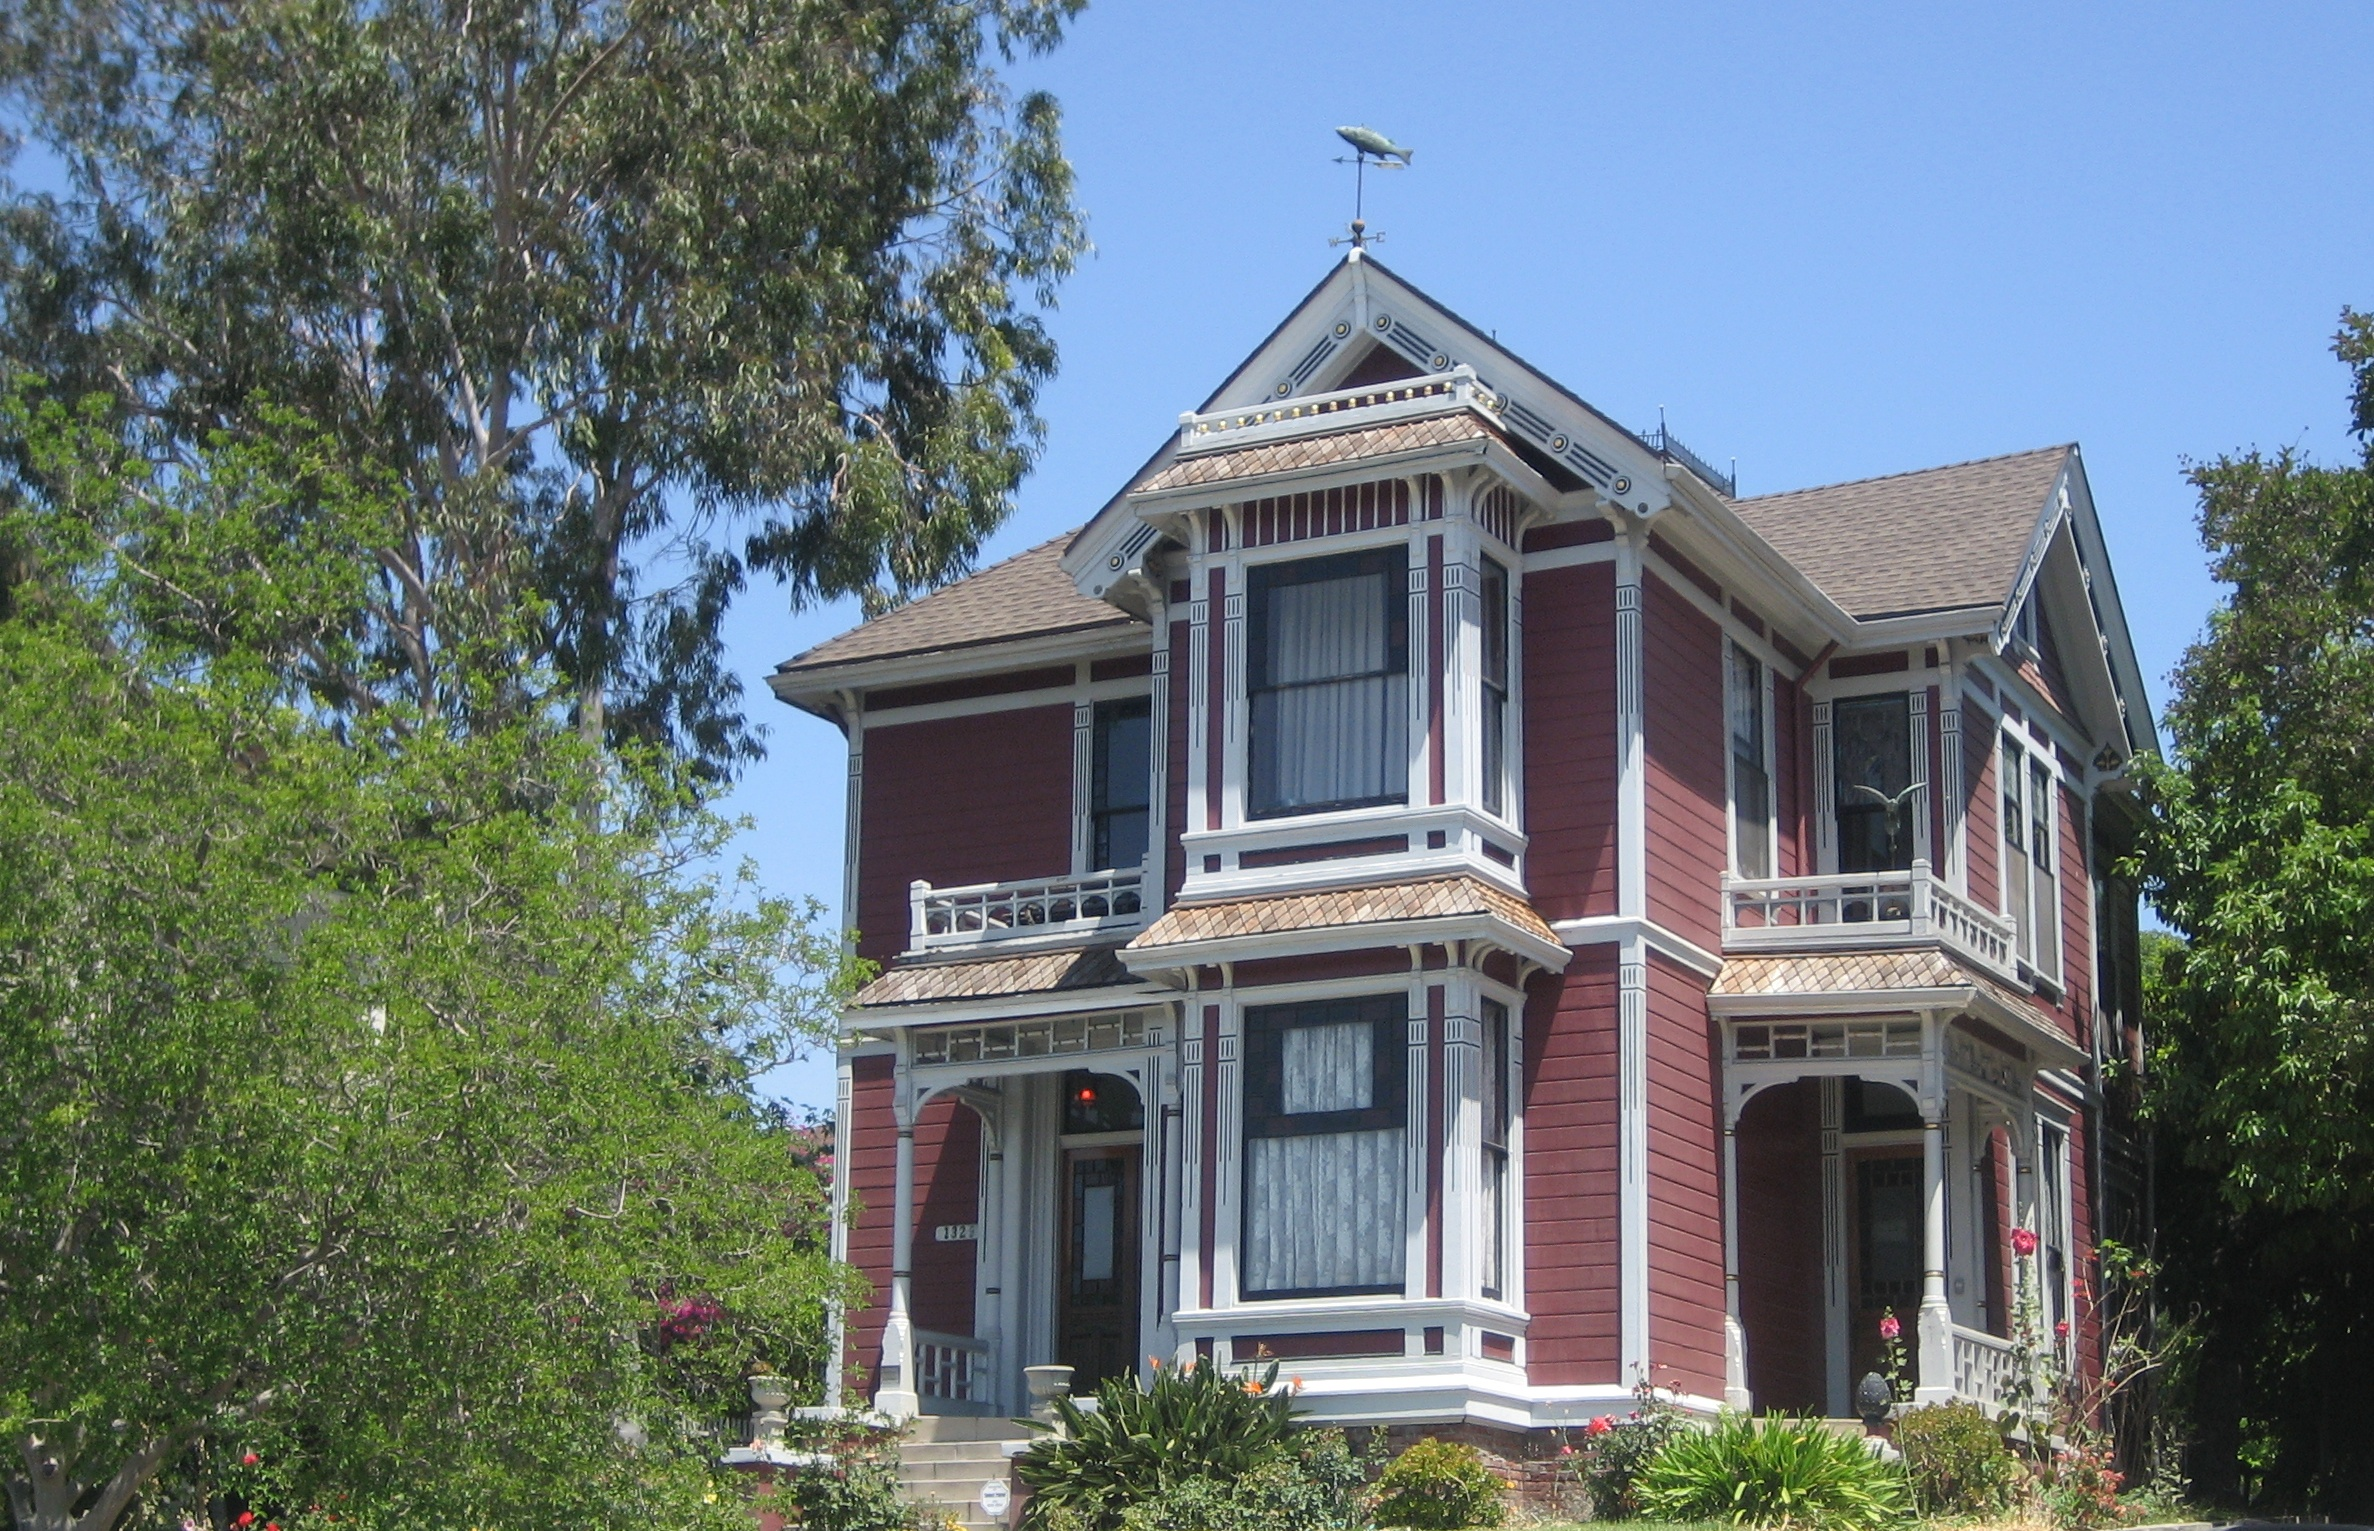 File:House at 1329 Carroll Ave., Los Angeles (Charmed House)-